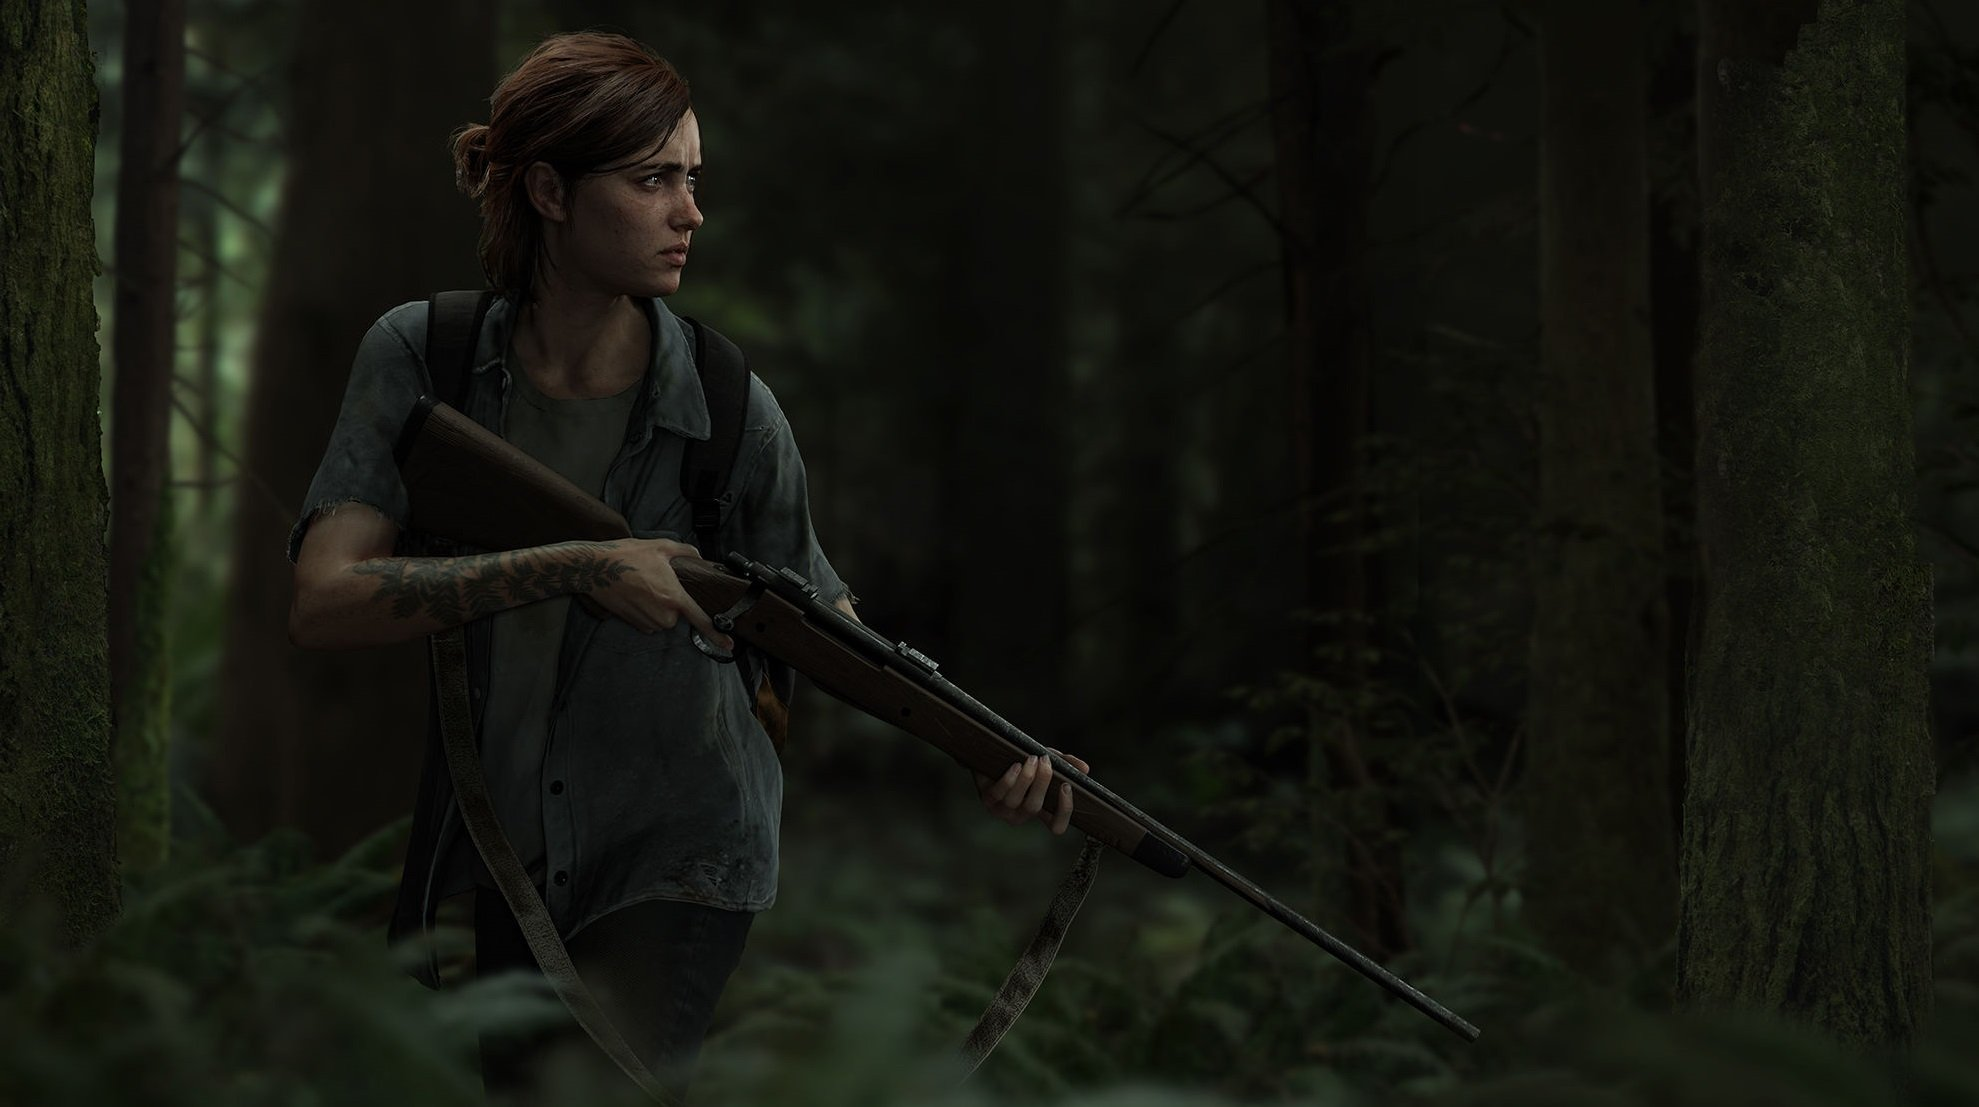 Upcoming State of Play will reveal Last of Us 2 release date